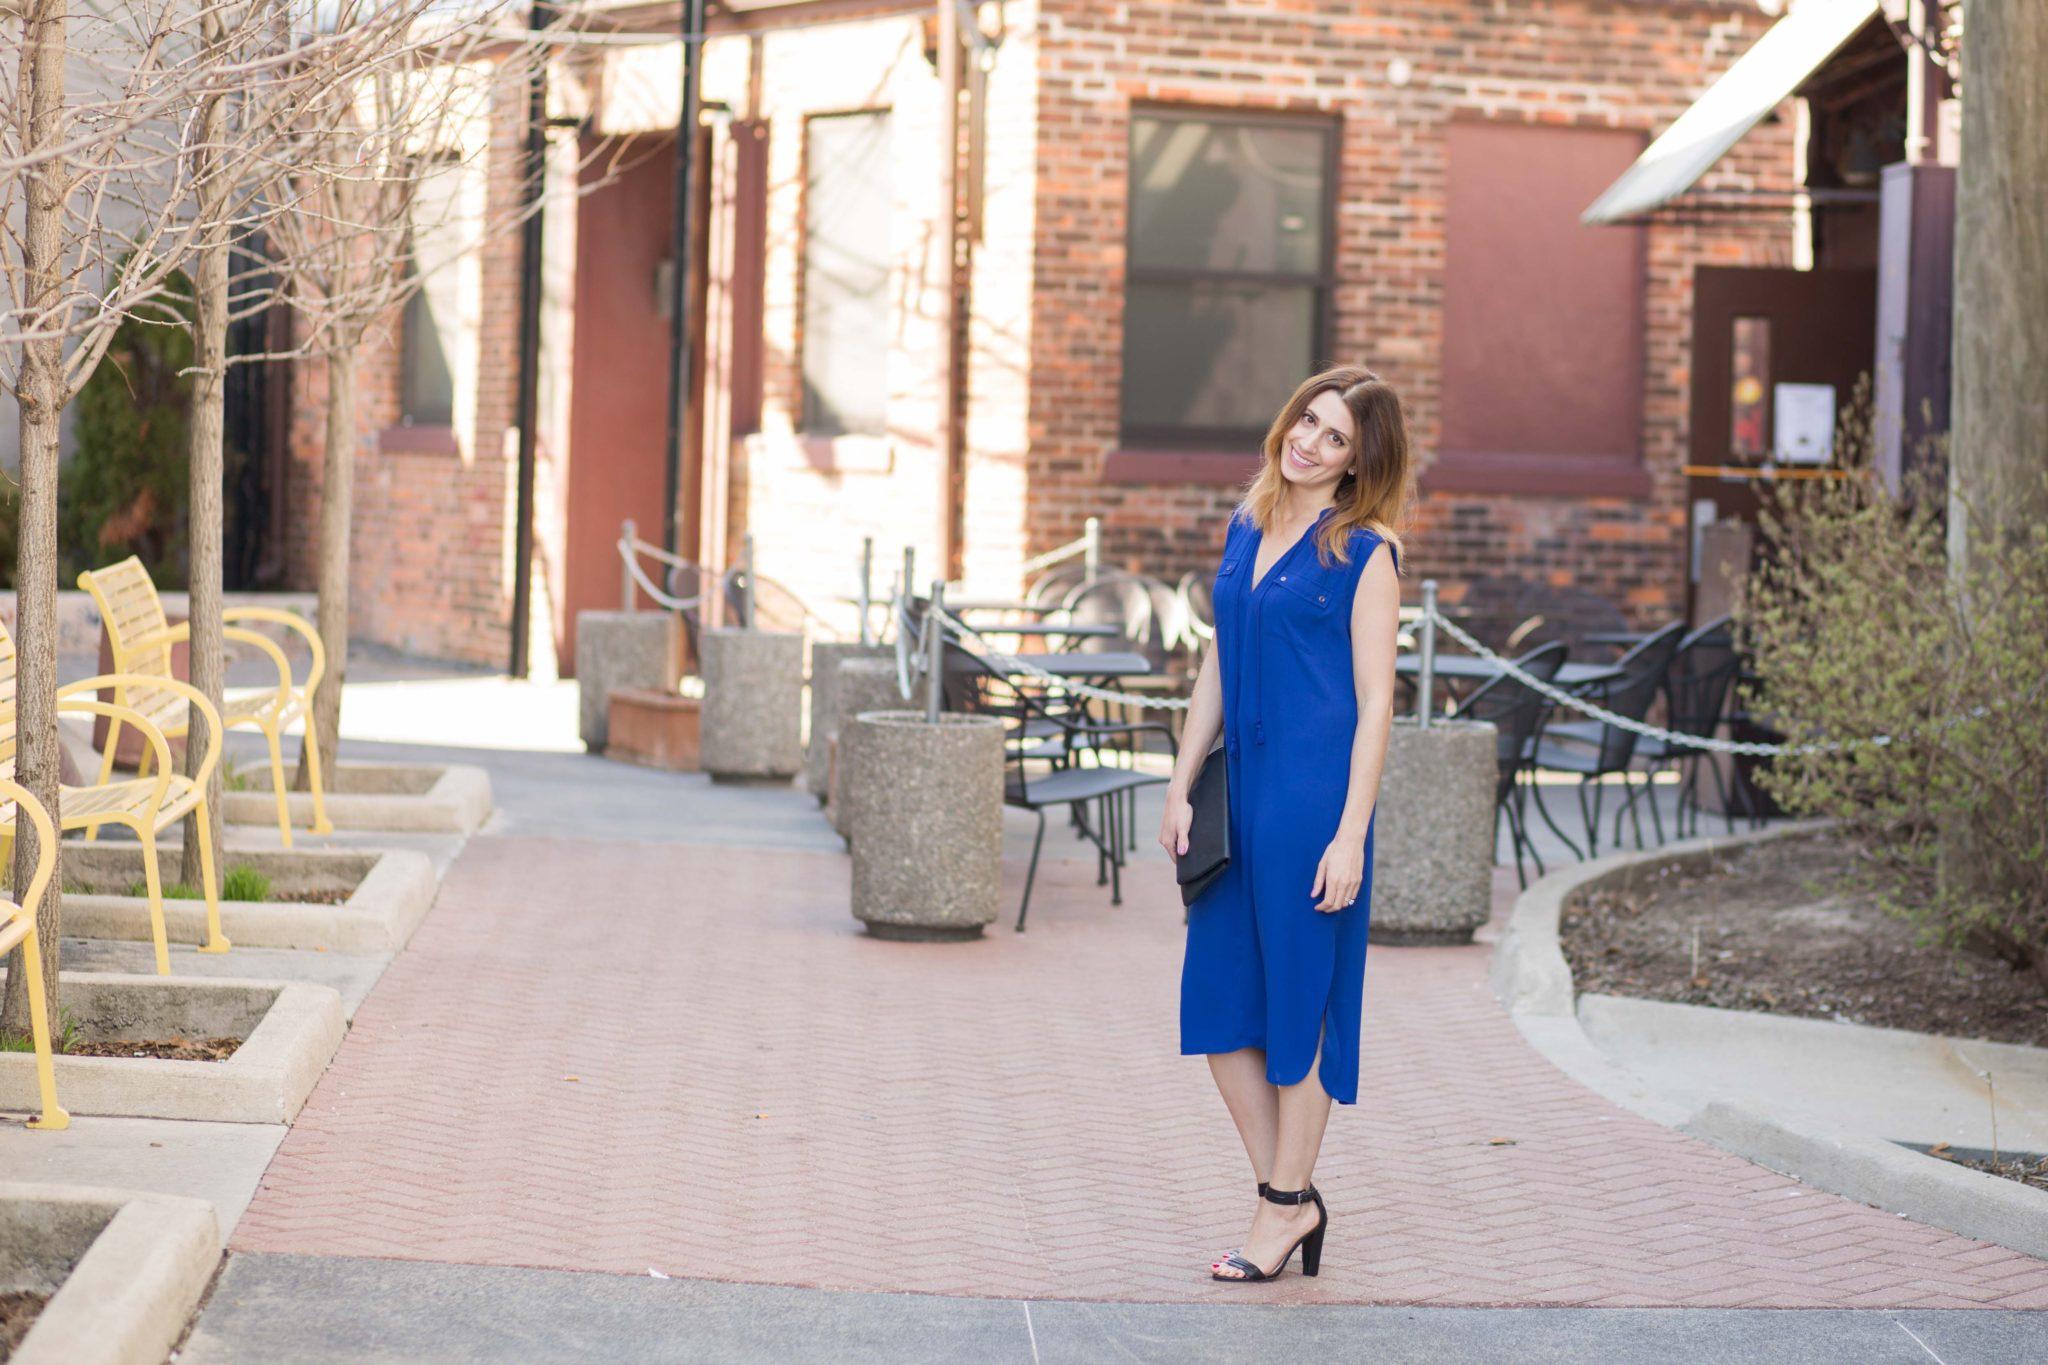 jcrew dress from thredup on allweareblog.com